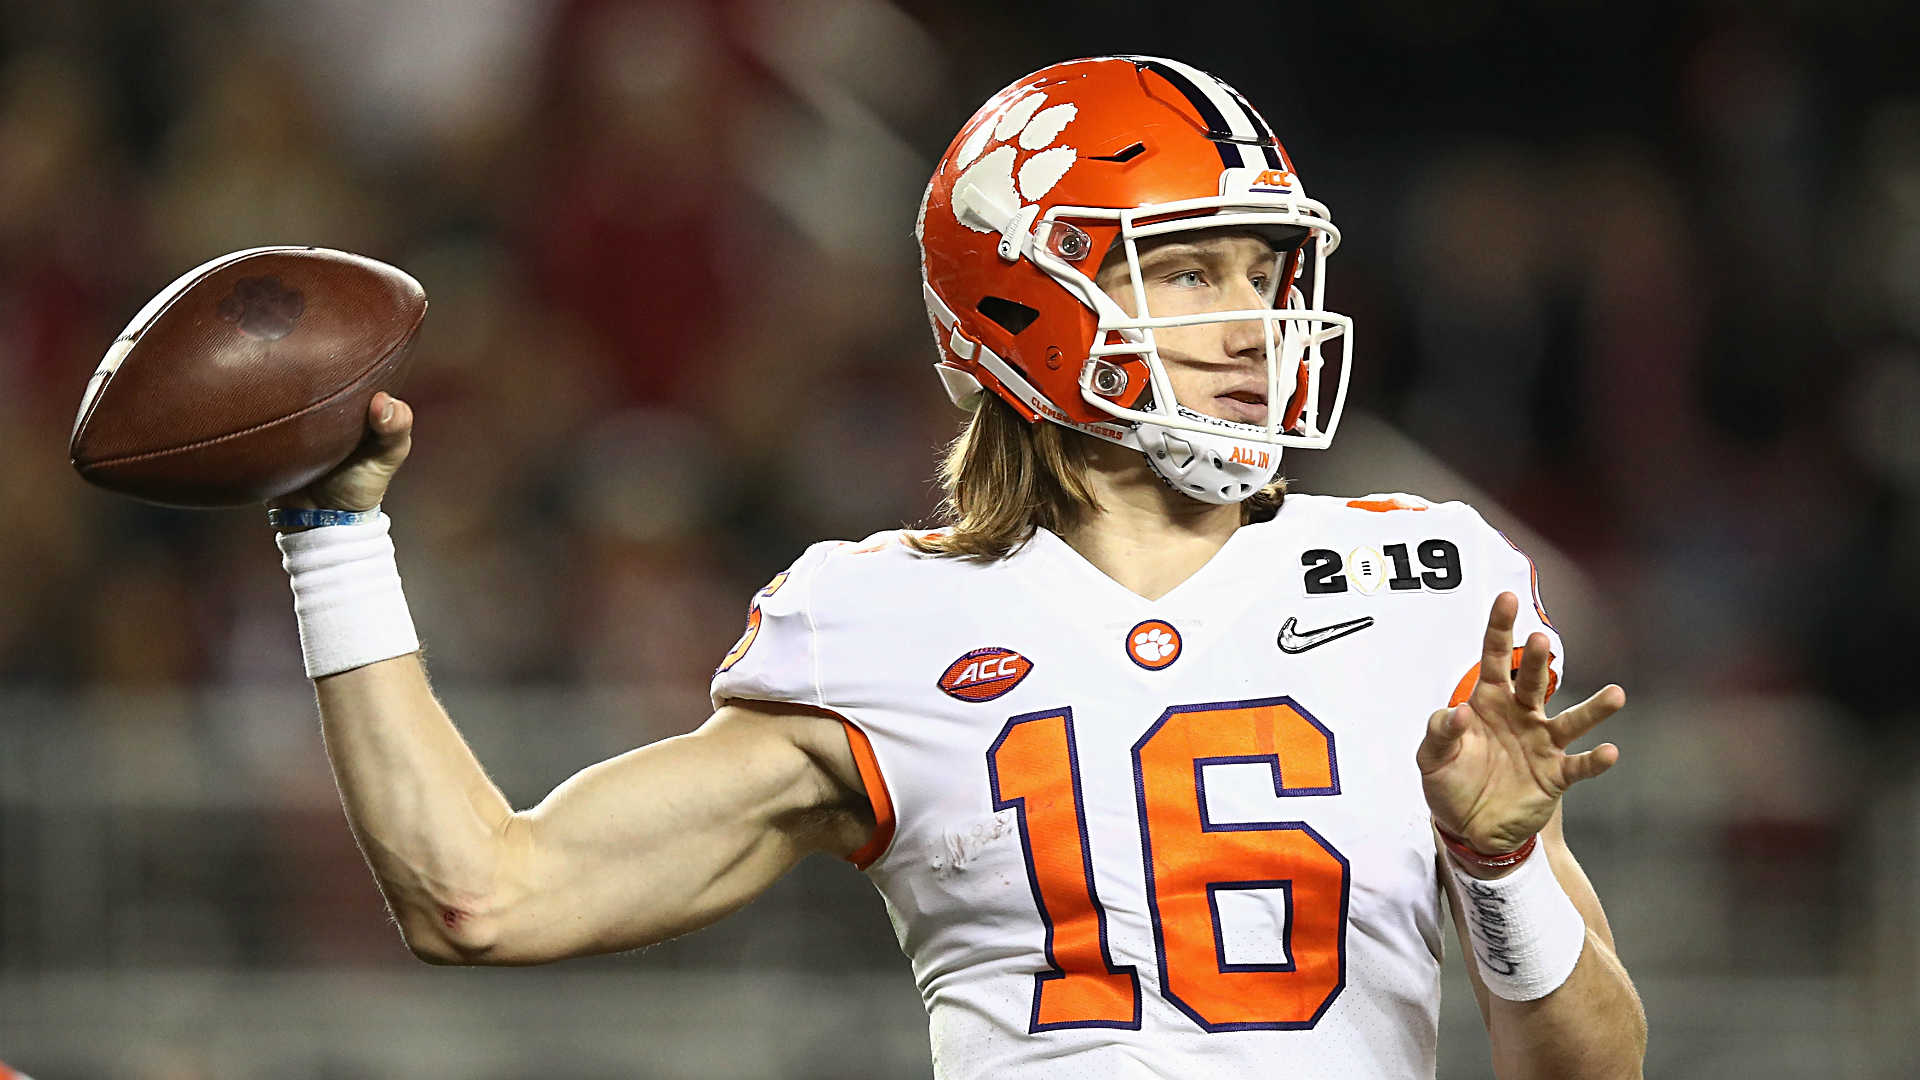 College football bowl schedule 2019: Dates, times, TV channels for all 40 matchups